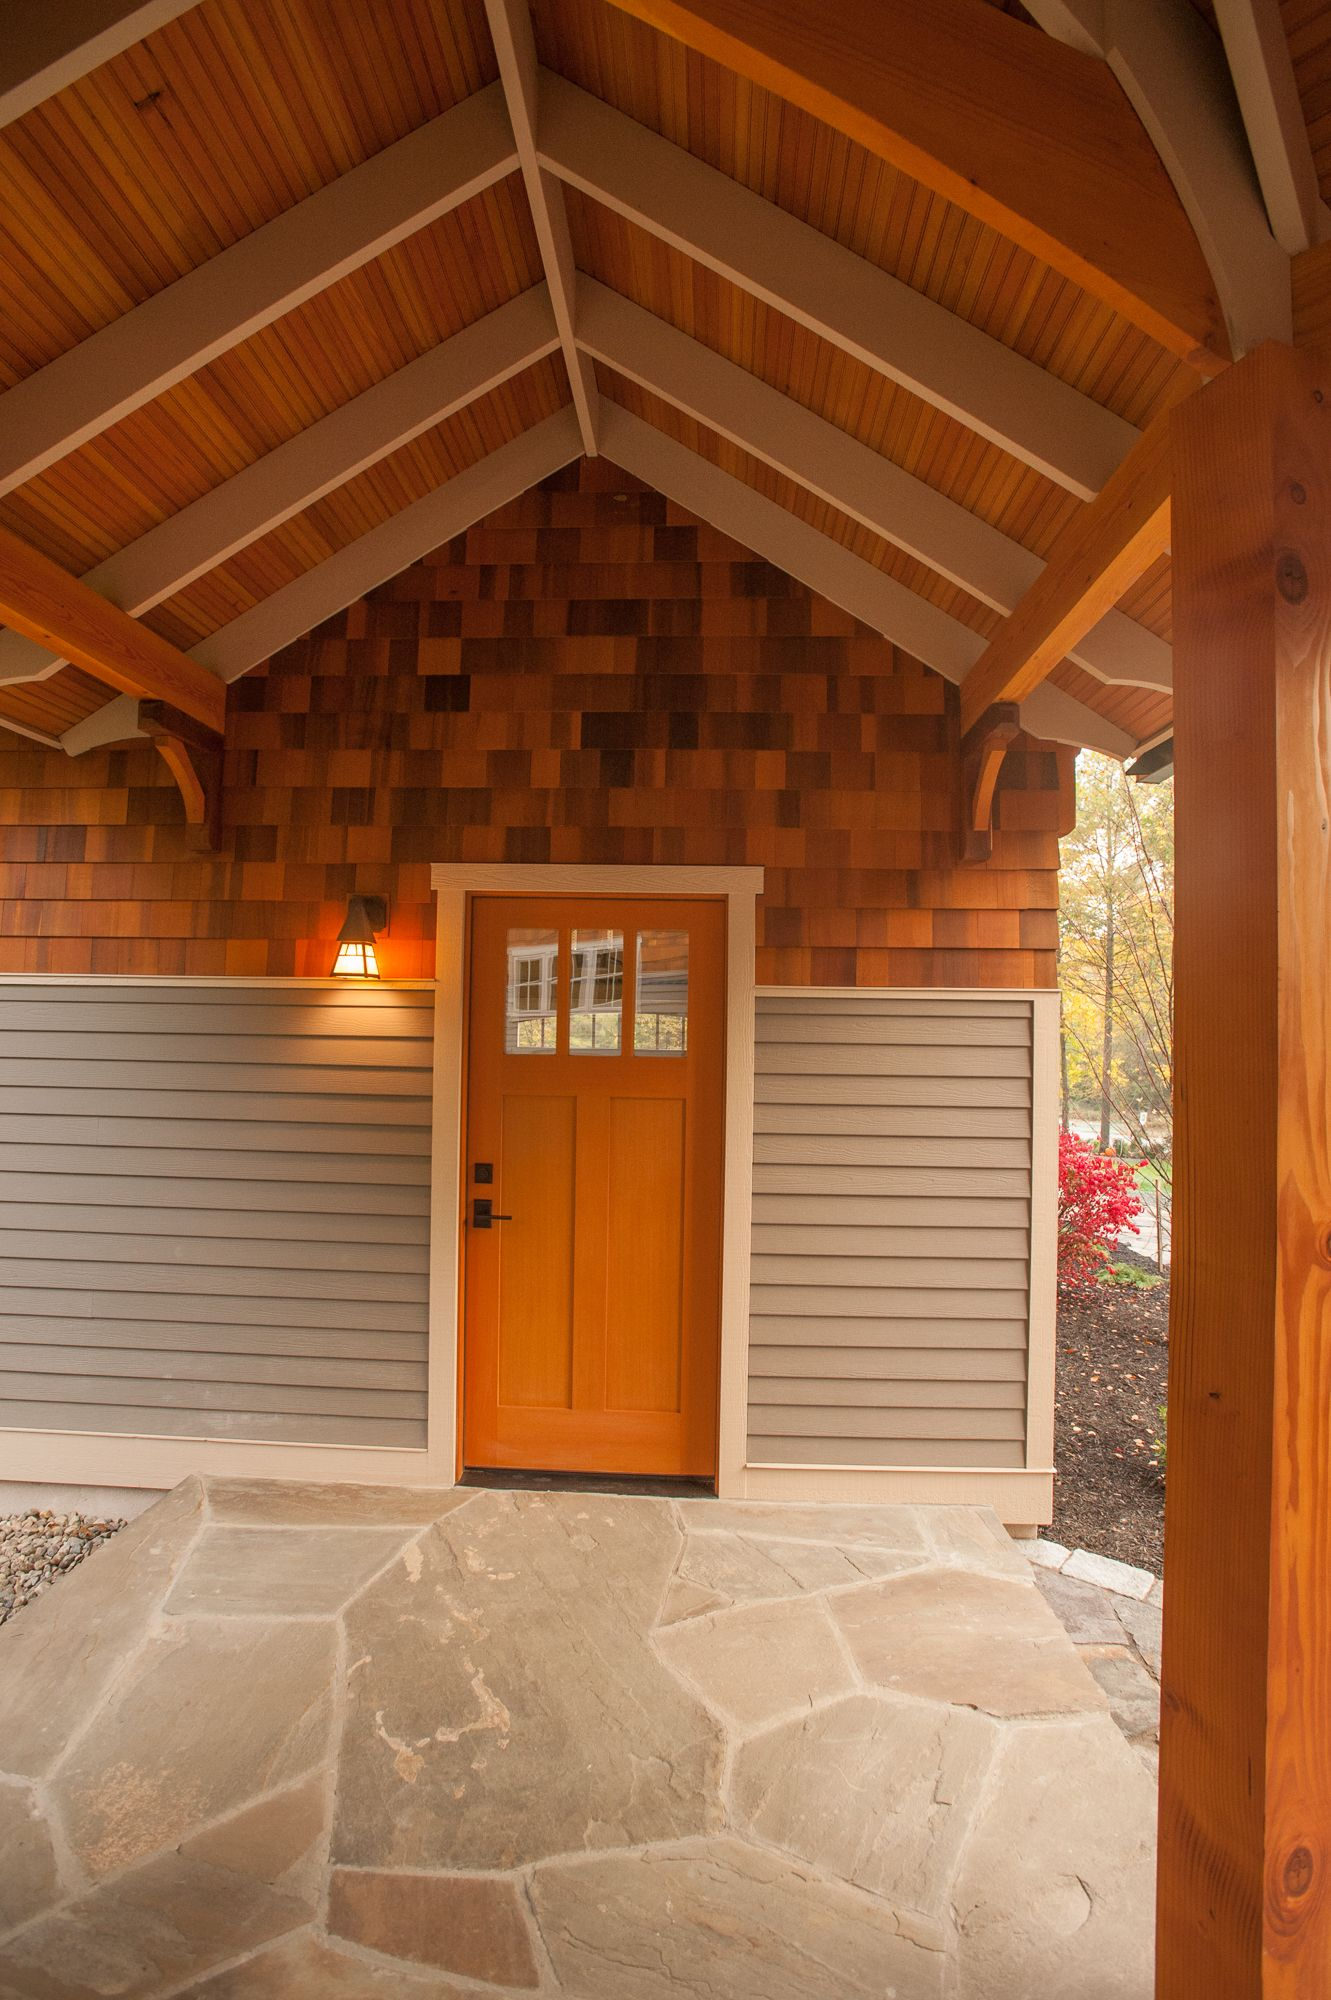 Breezeway Between Garage And House Wooden Overhead